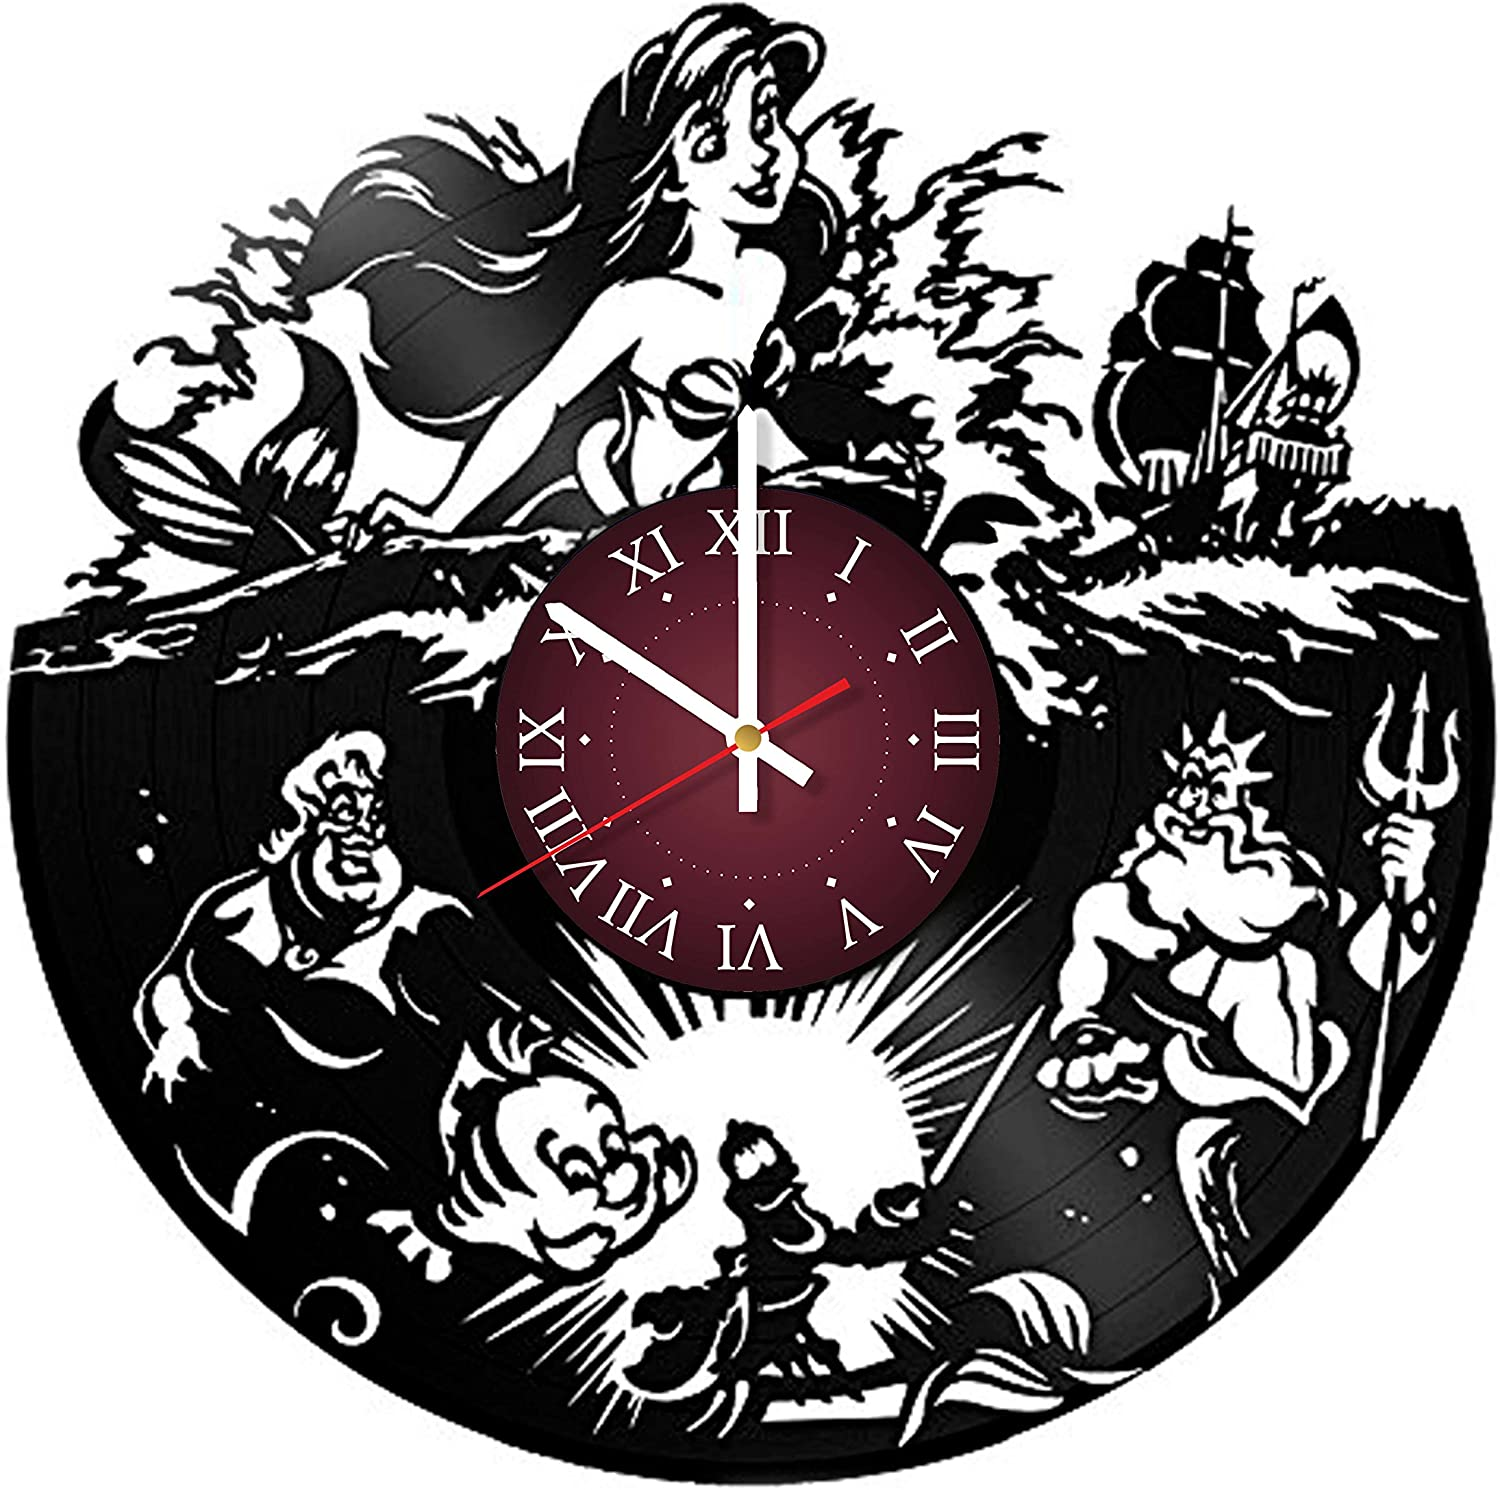 The Little Mermaid Vinyl Record Wall Clock - Kids Room wall decor - Gift ideas for kids, girls, boys, teens - Cartoon Unique Art Design